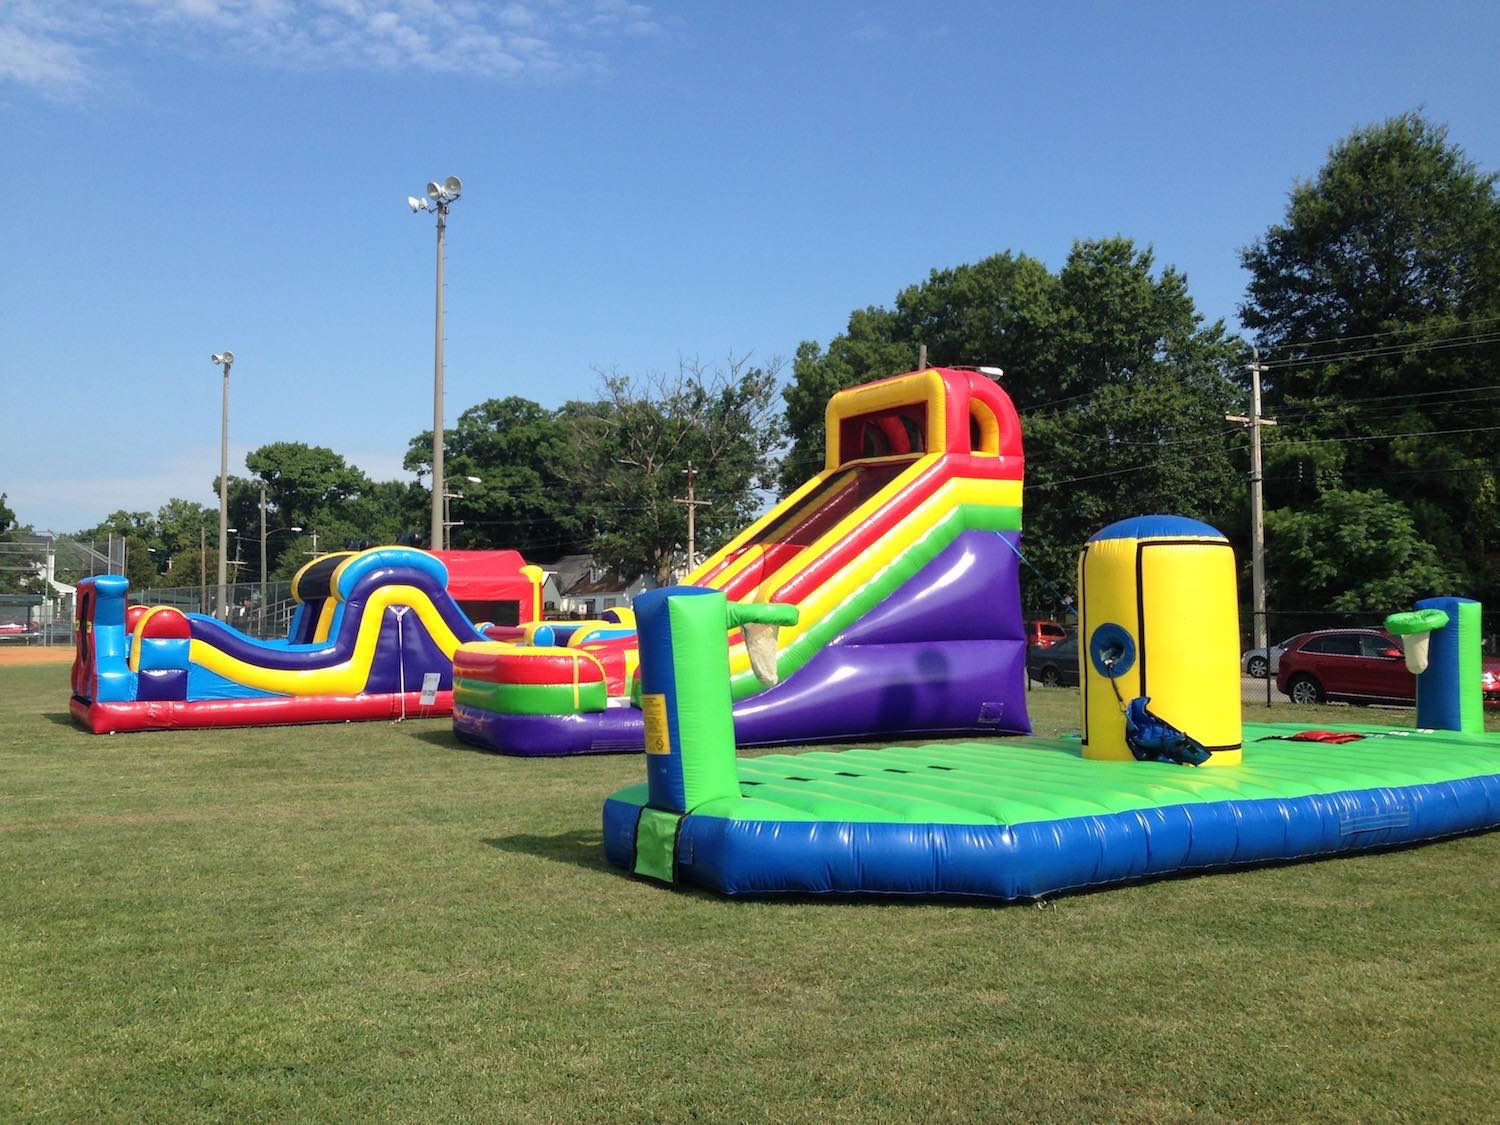 From back to front: Bounce house, obstacle course, 18 foot slide, sports challenge bungee run.